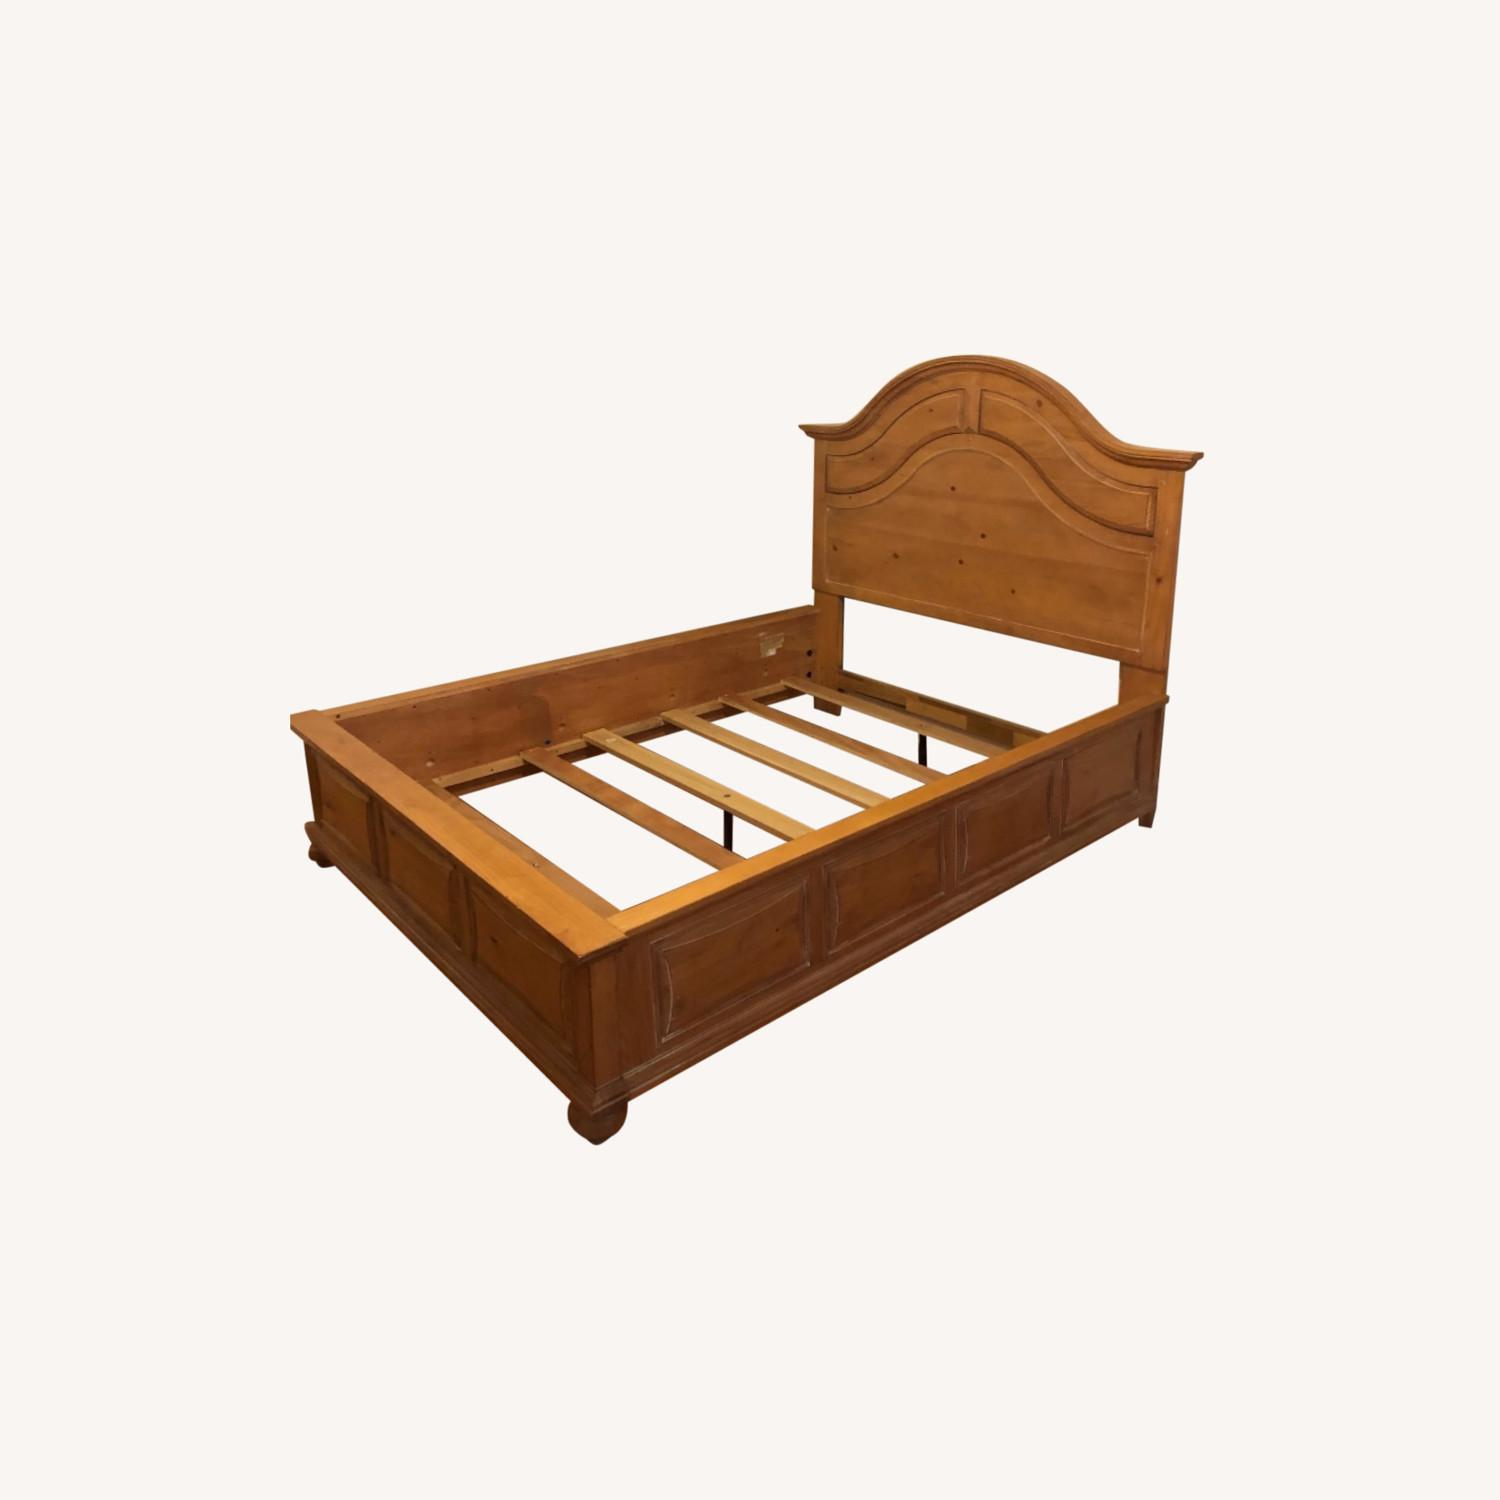 Broyhill Furniture Solid Wood Queen Size Bed - image-0